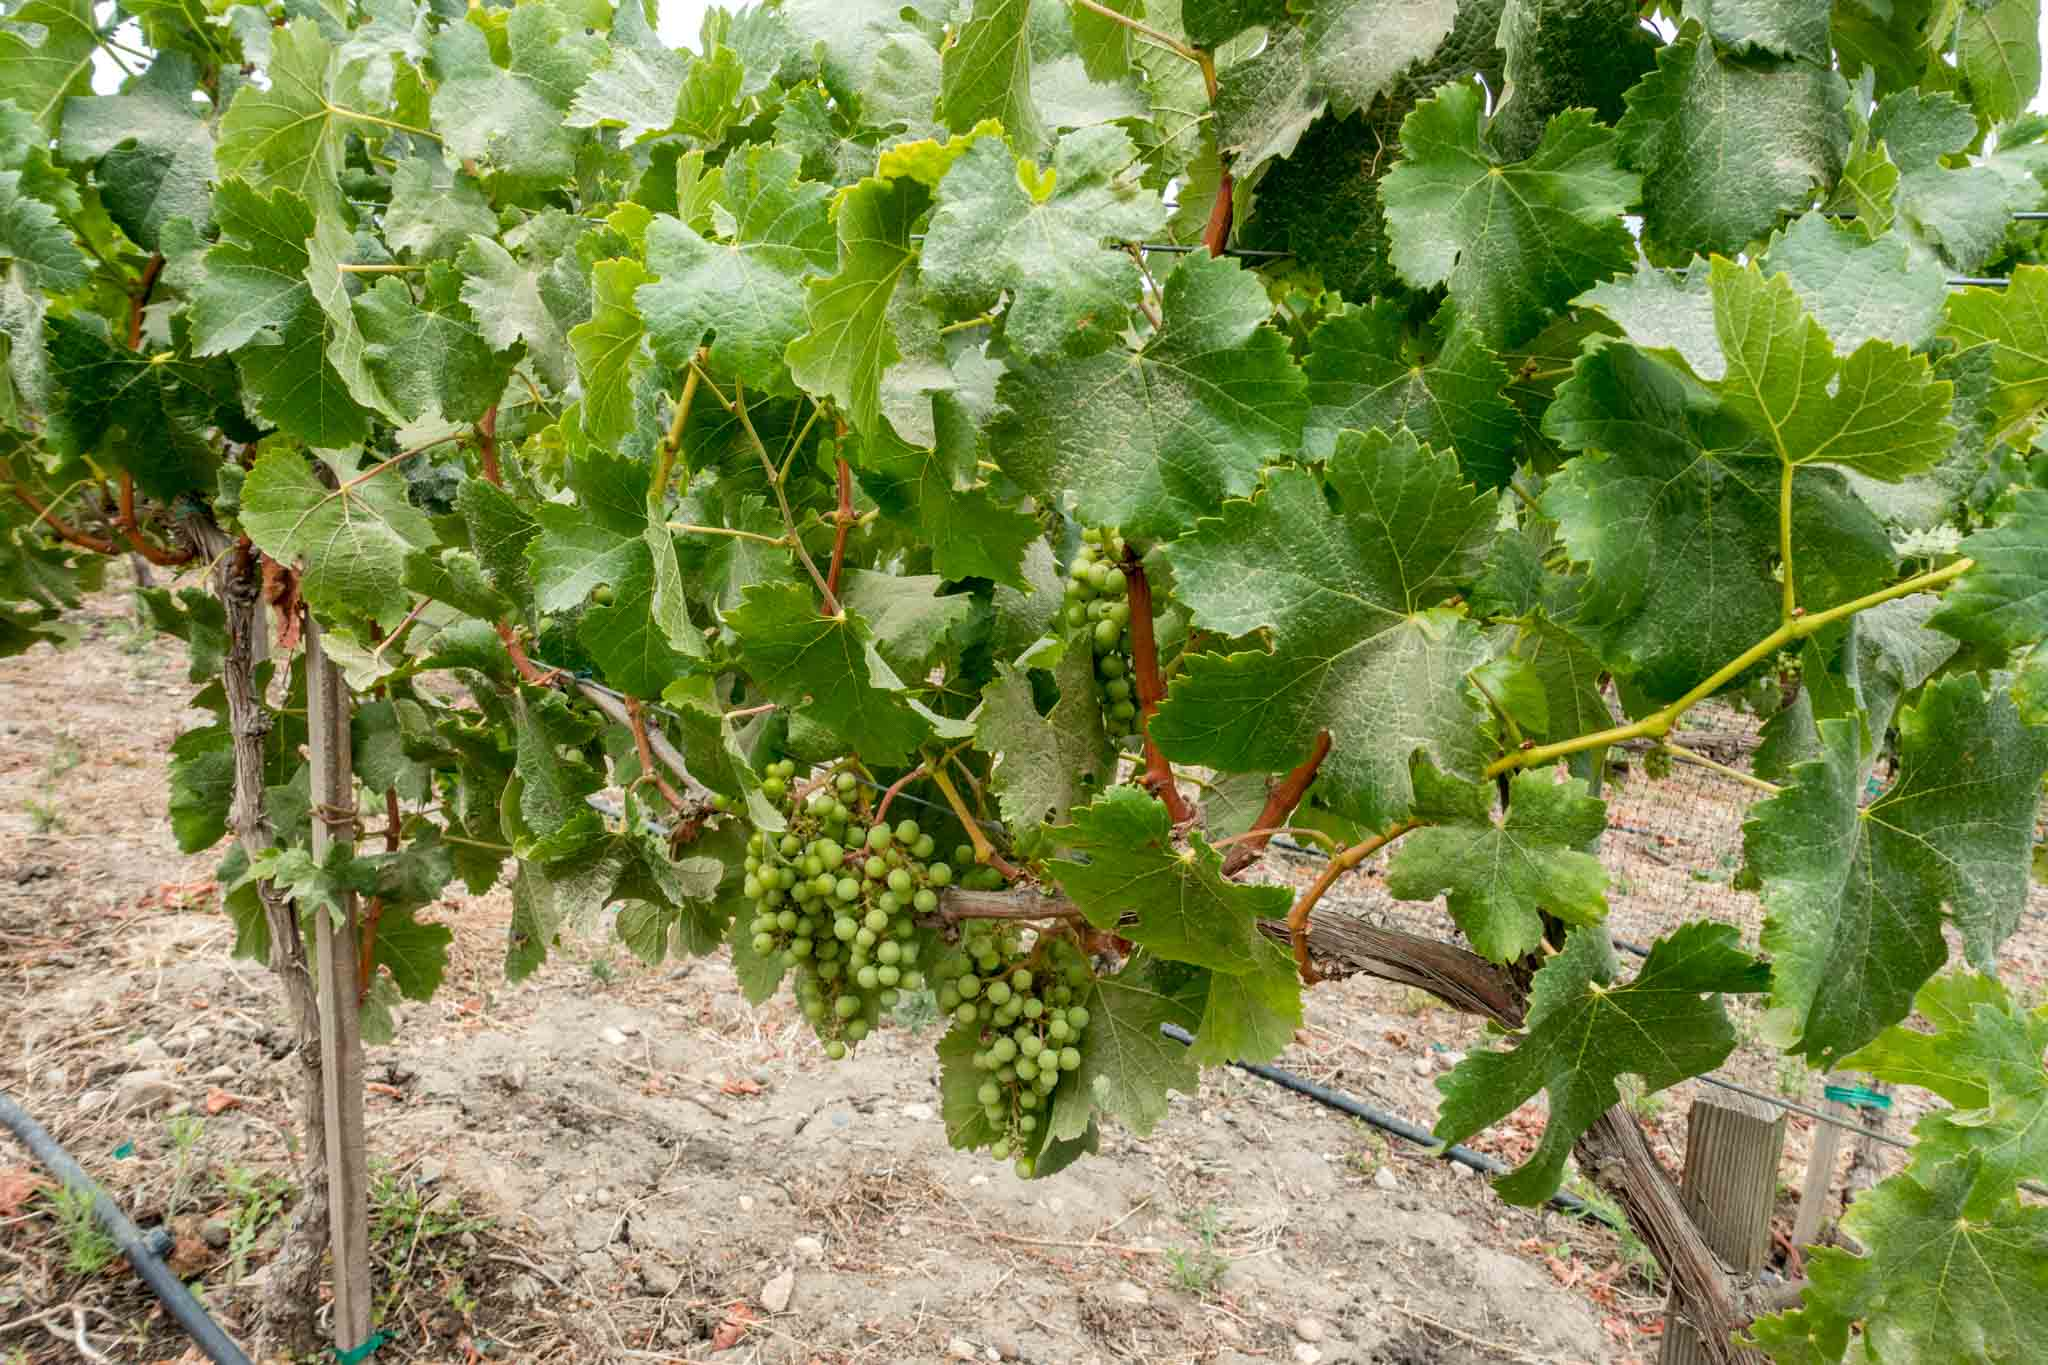 Grapes on a vine at a vineyard